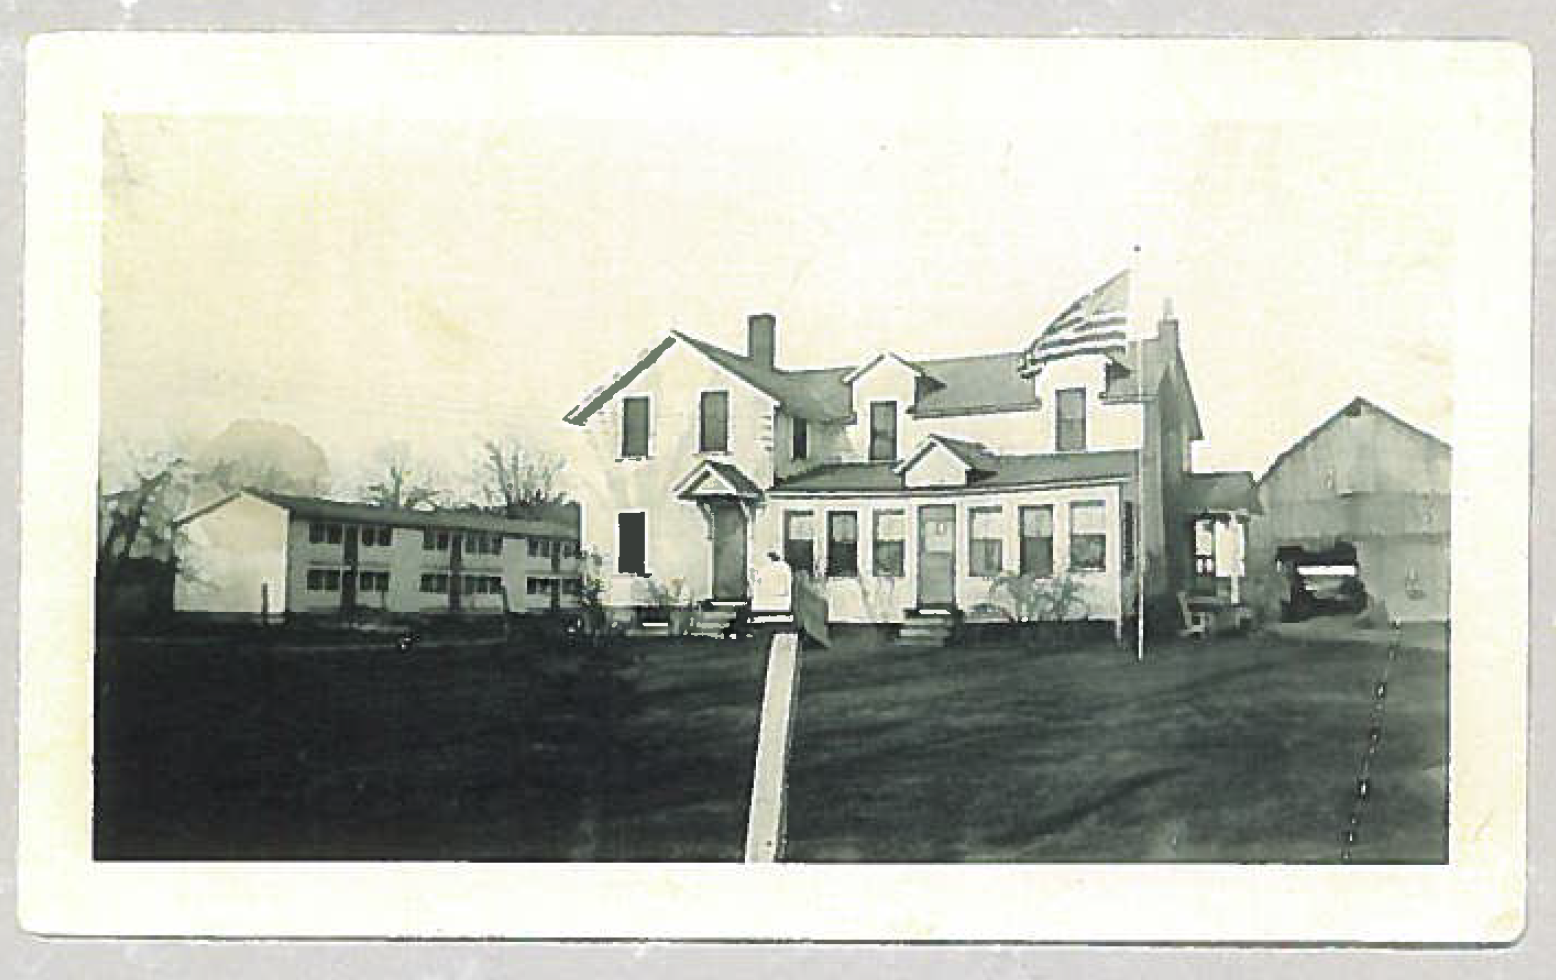 Superior's original office on the farm, complete with chicken coops and barn, in the 1940's.